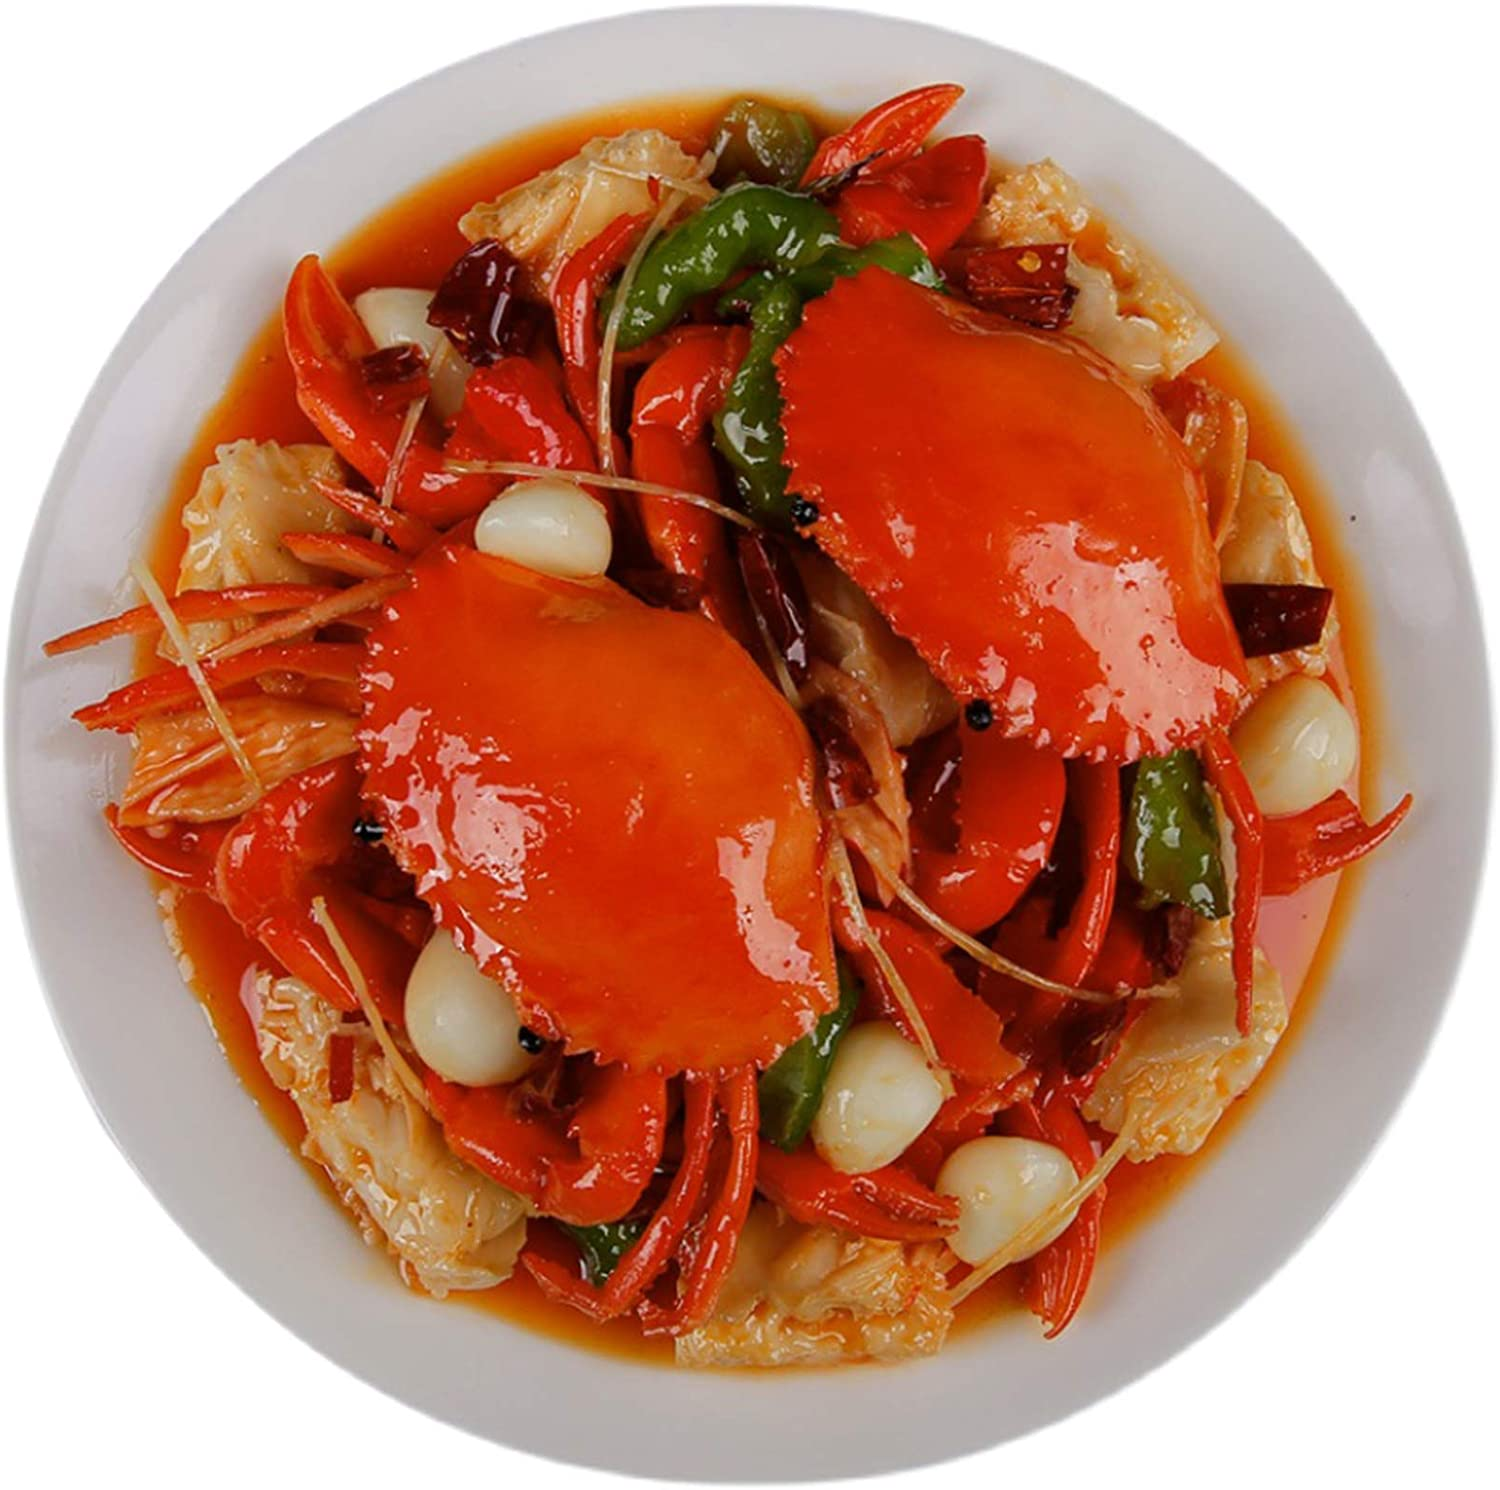 WJH9 Fake Cooked Lobster Simulation Crab Meat Model Faux Simulation Lifelike Fish Food Model for Home House Party Kitchen Cabinet Desk Decoration